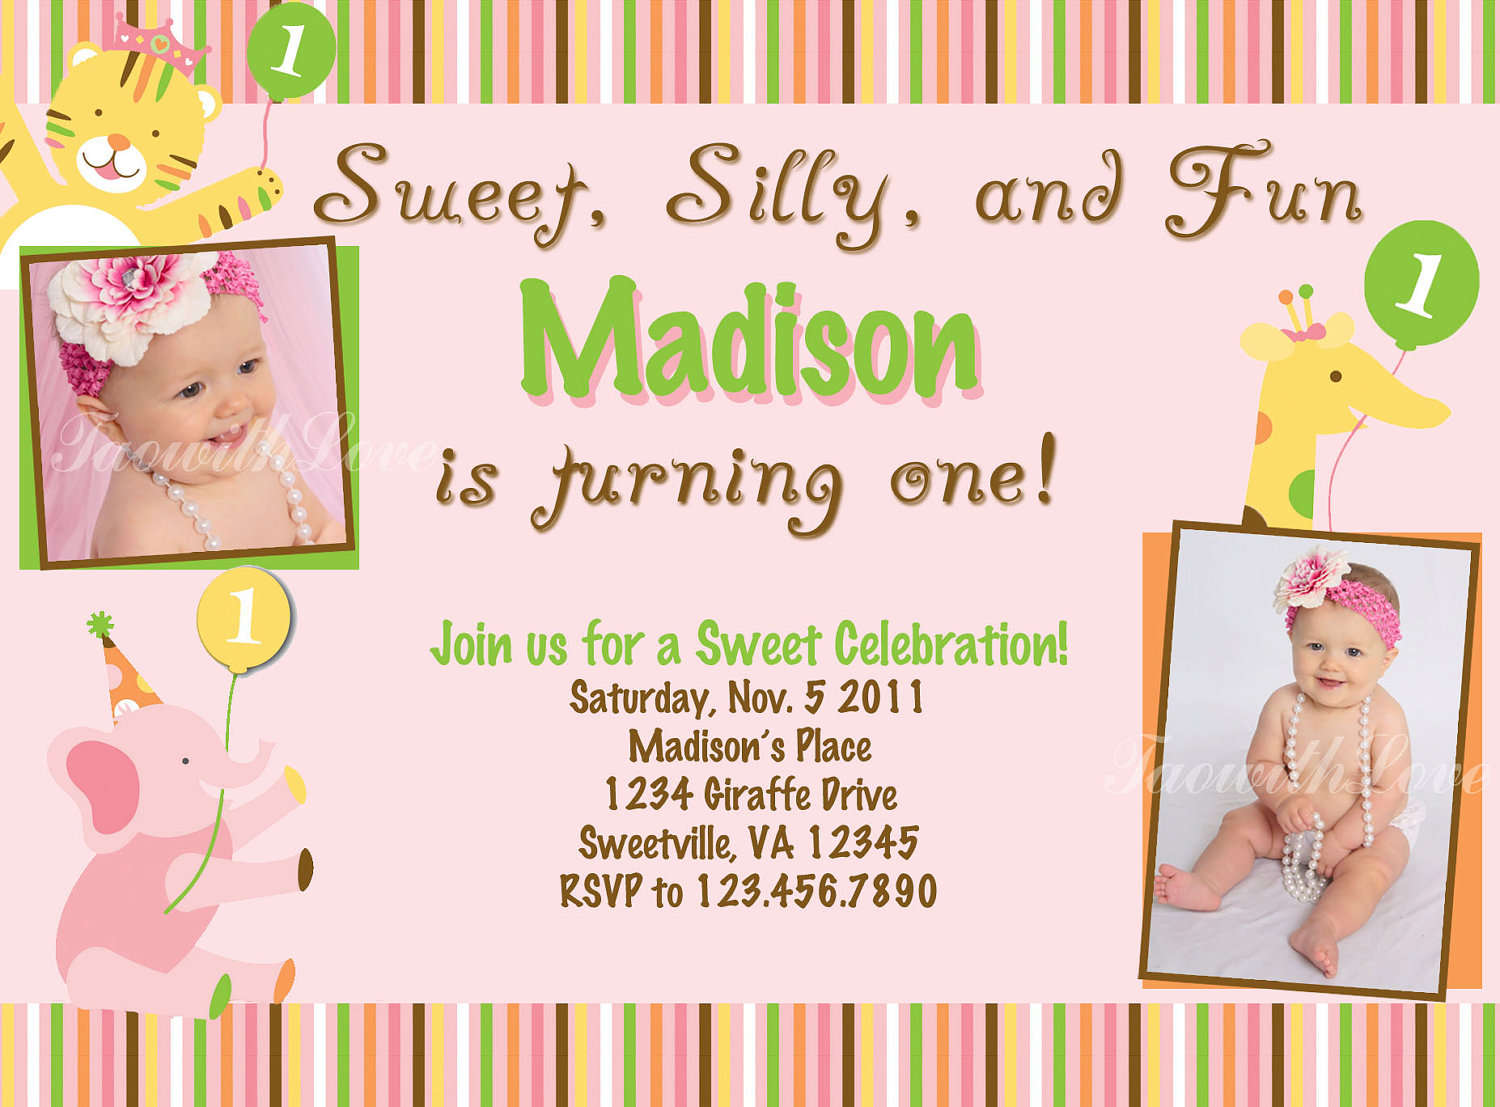 free 1st birthday invitation templates printable ; Sweet-Silly-and-Fun-Free-Printable-1st-Birthday-Invitations-with-Baby-Madison